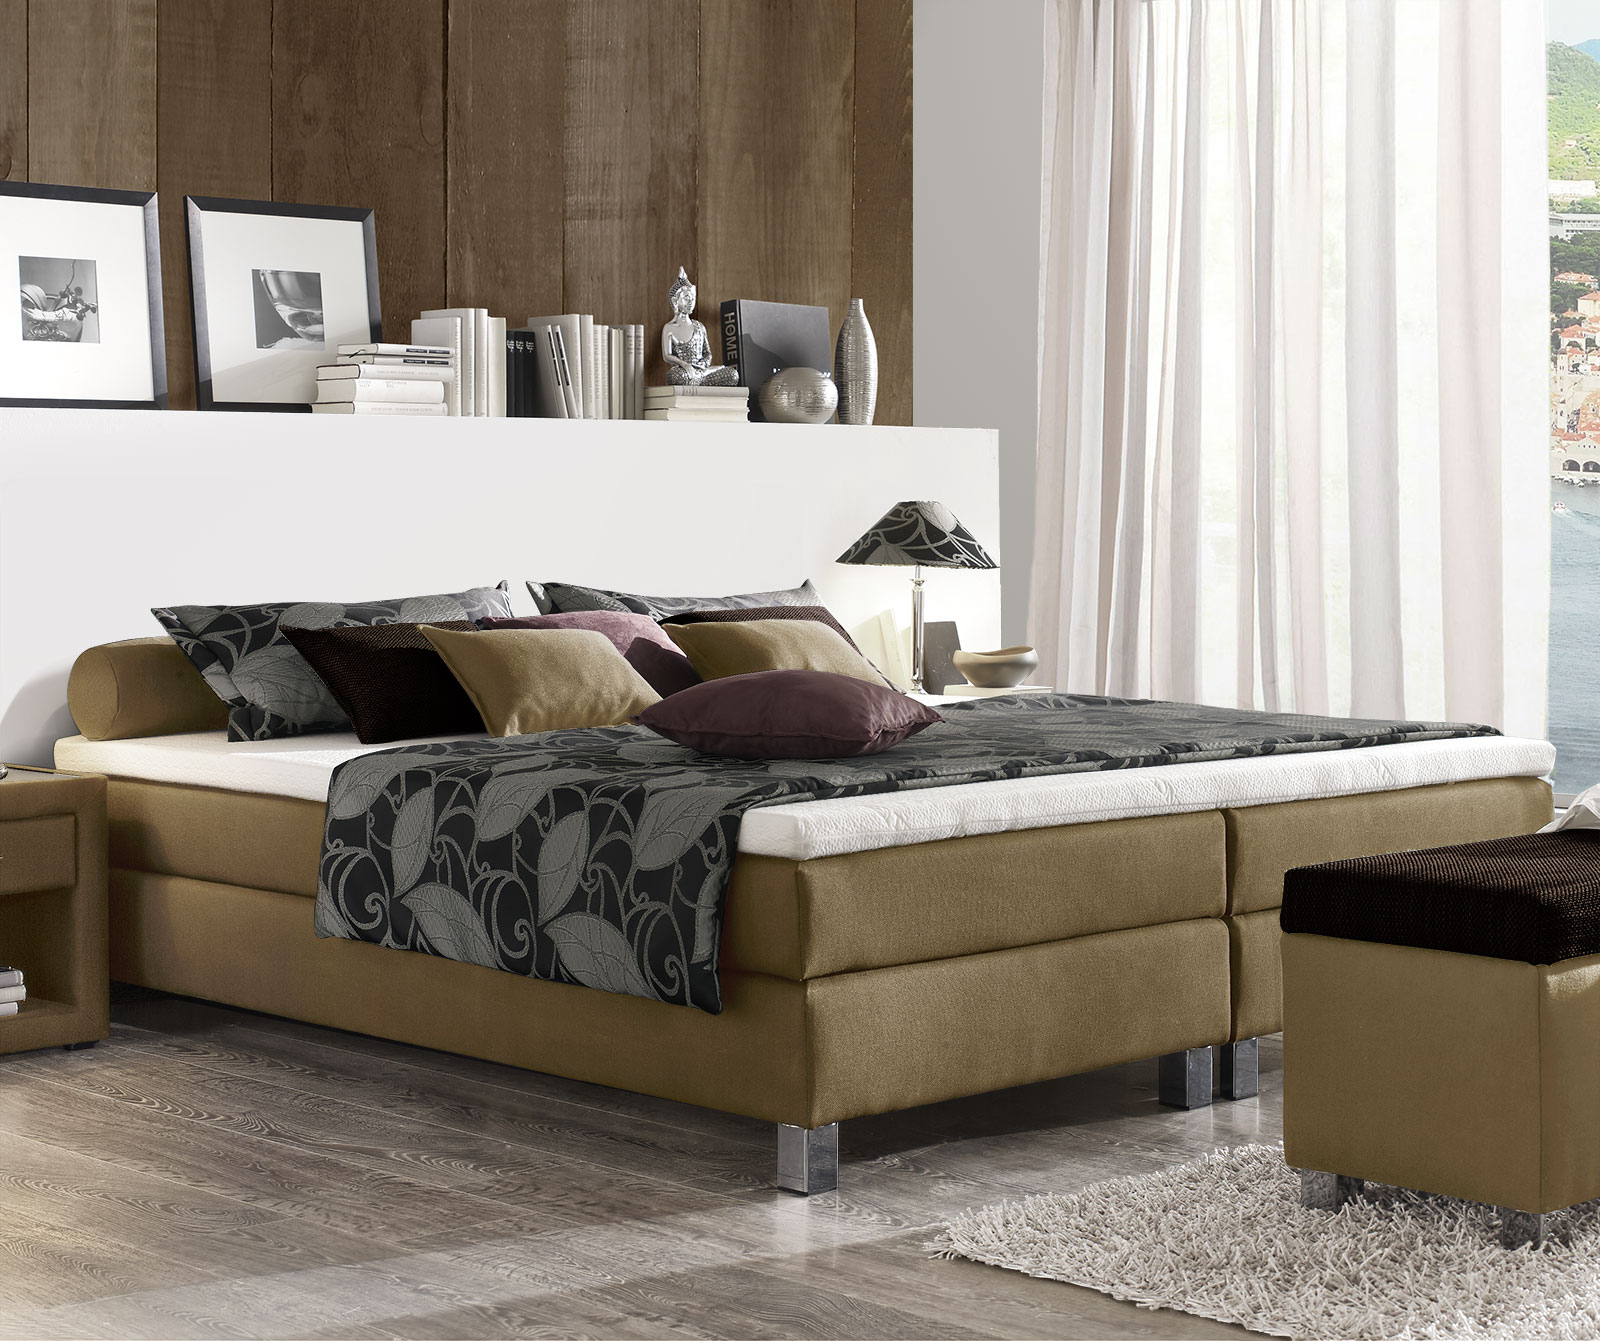 boxspringbett ohne metall neuesten design. Black Bedroom Furniture Sets. Home Design Ideas